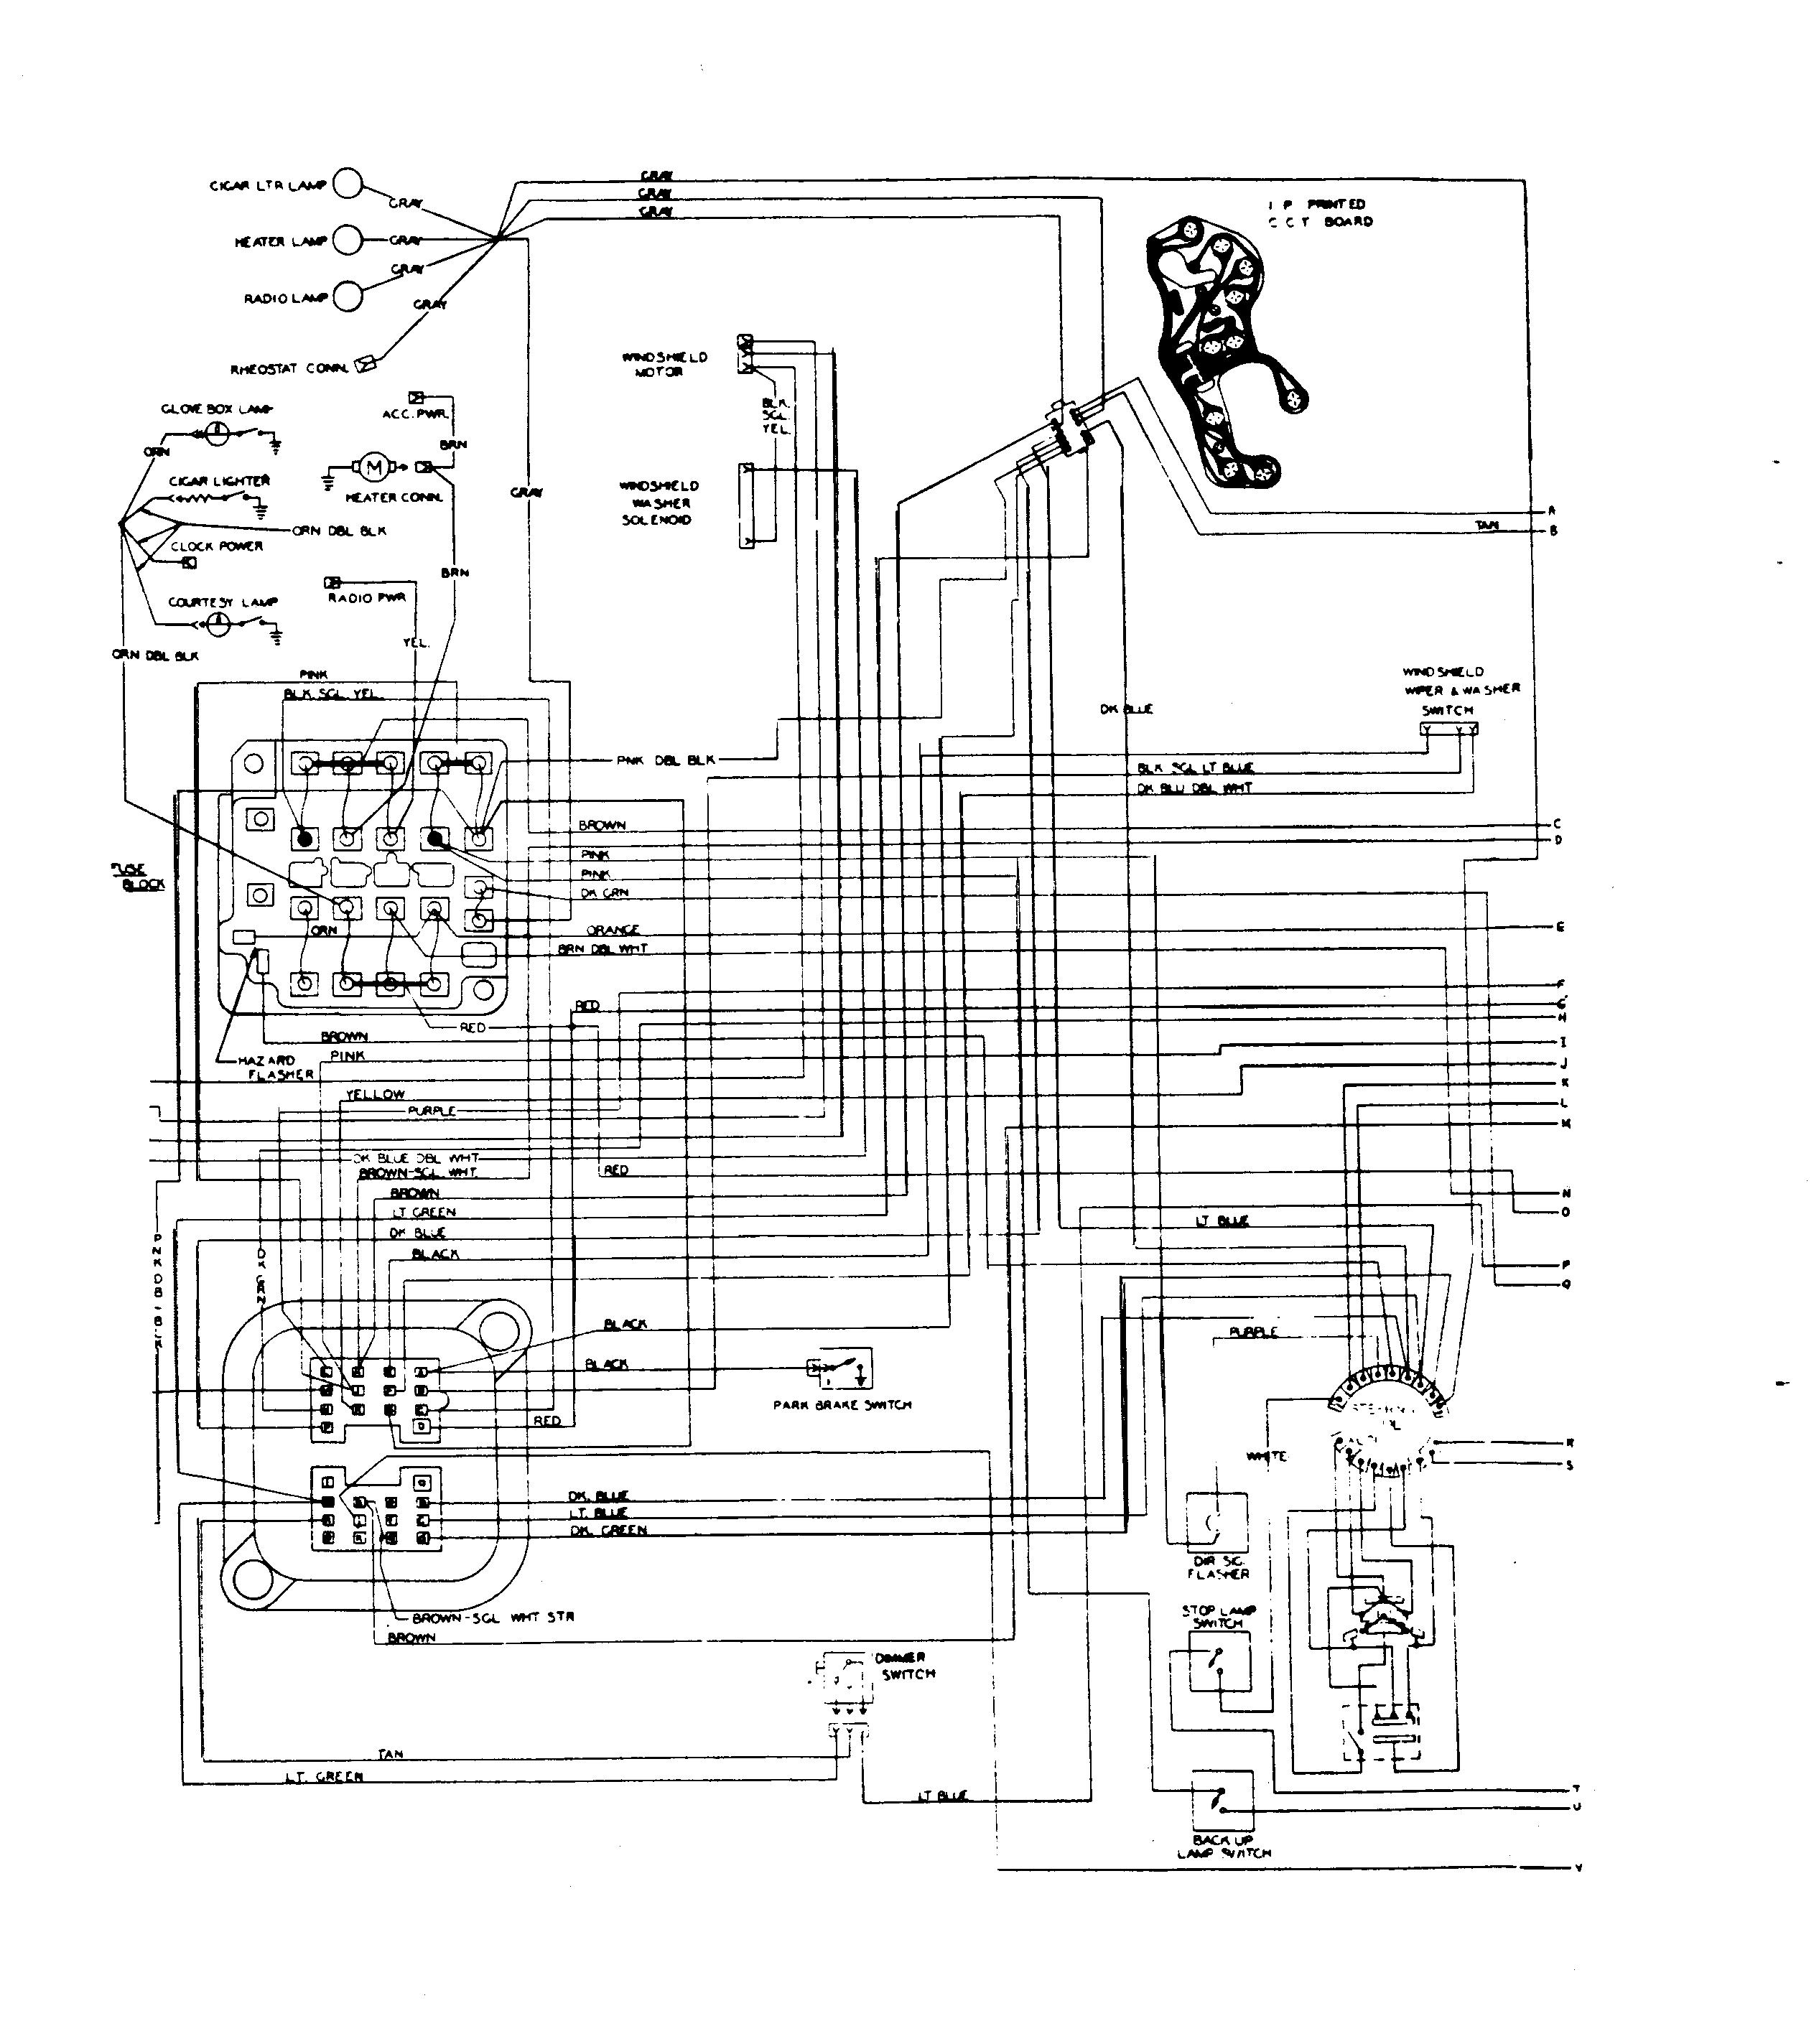 Dixco Tachometer Wiring Automotive Diagram Tach Turn Signal Model 98